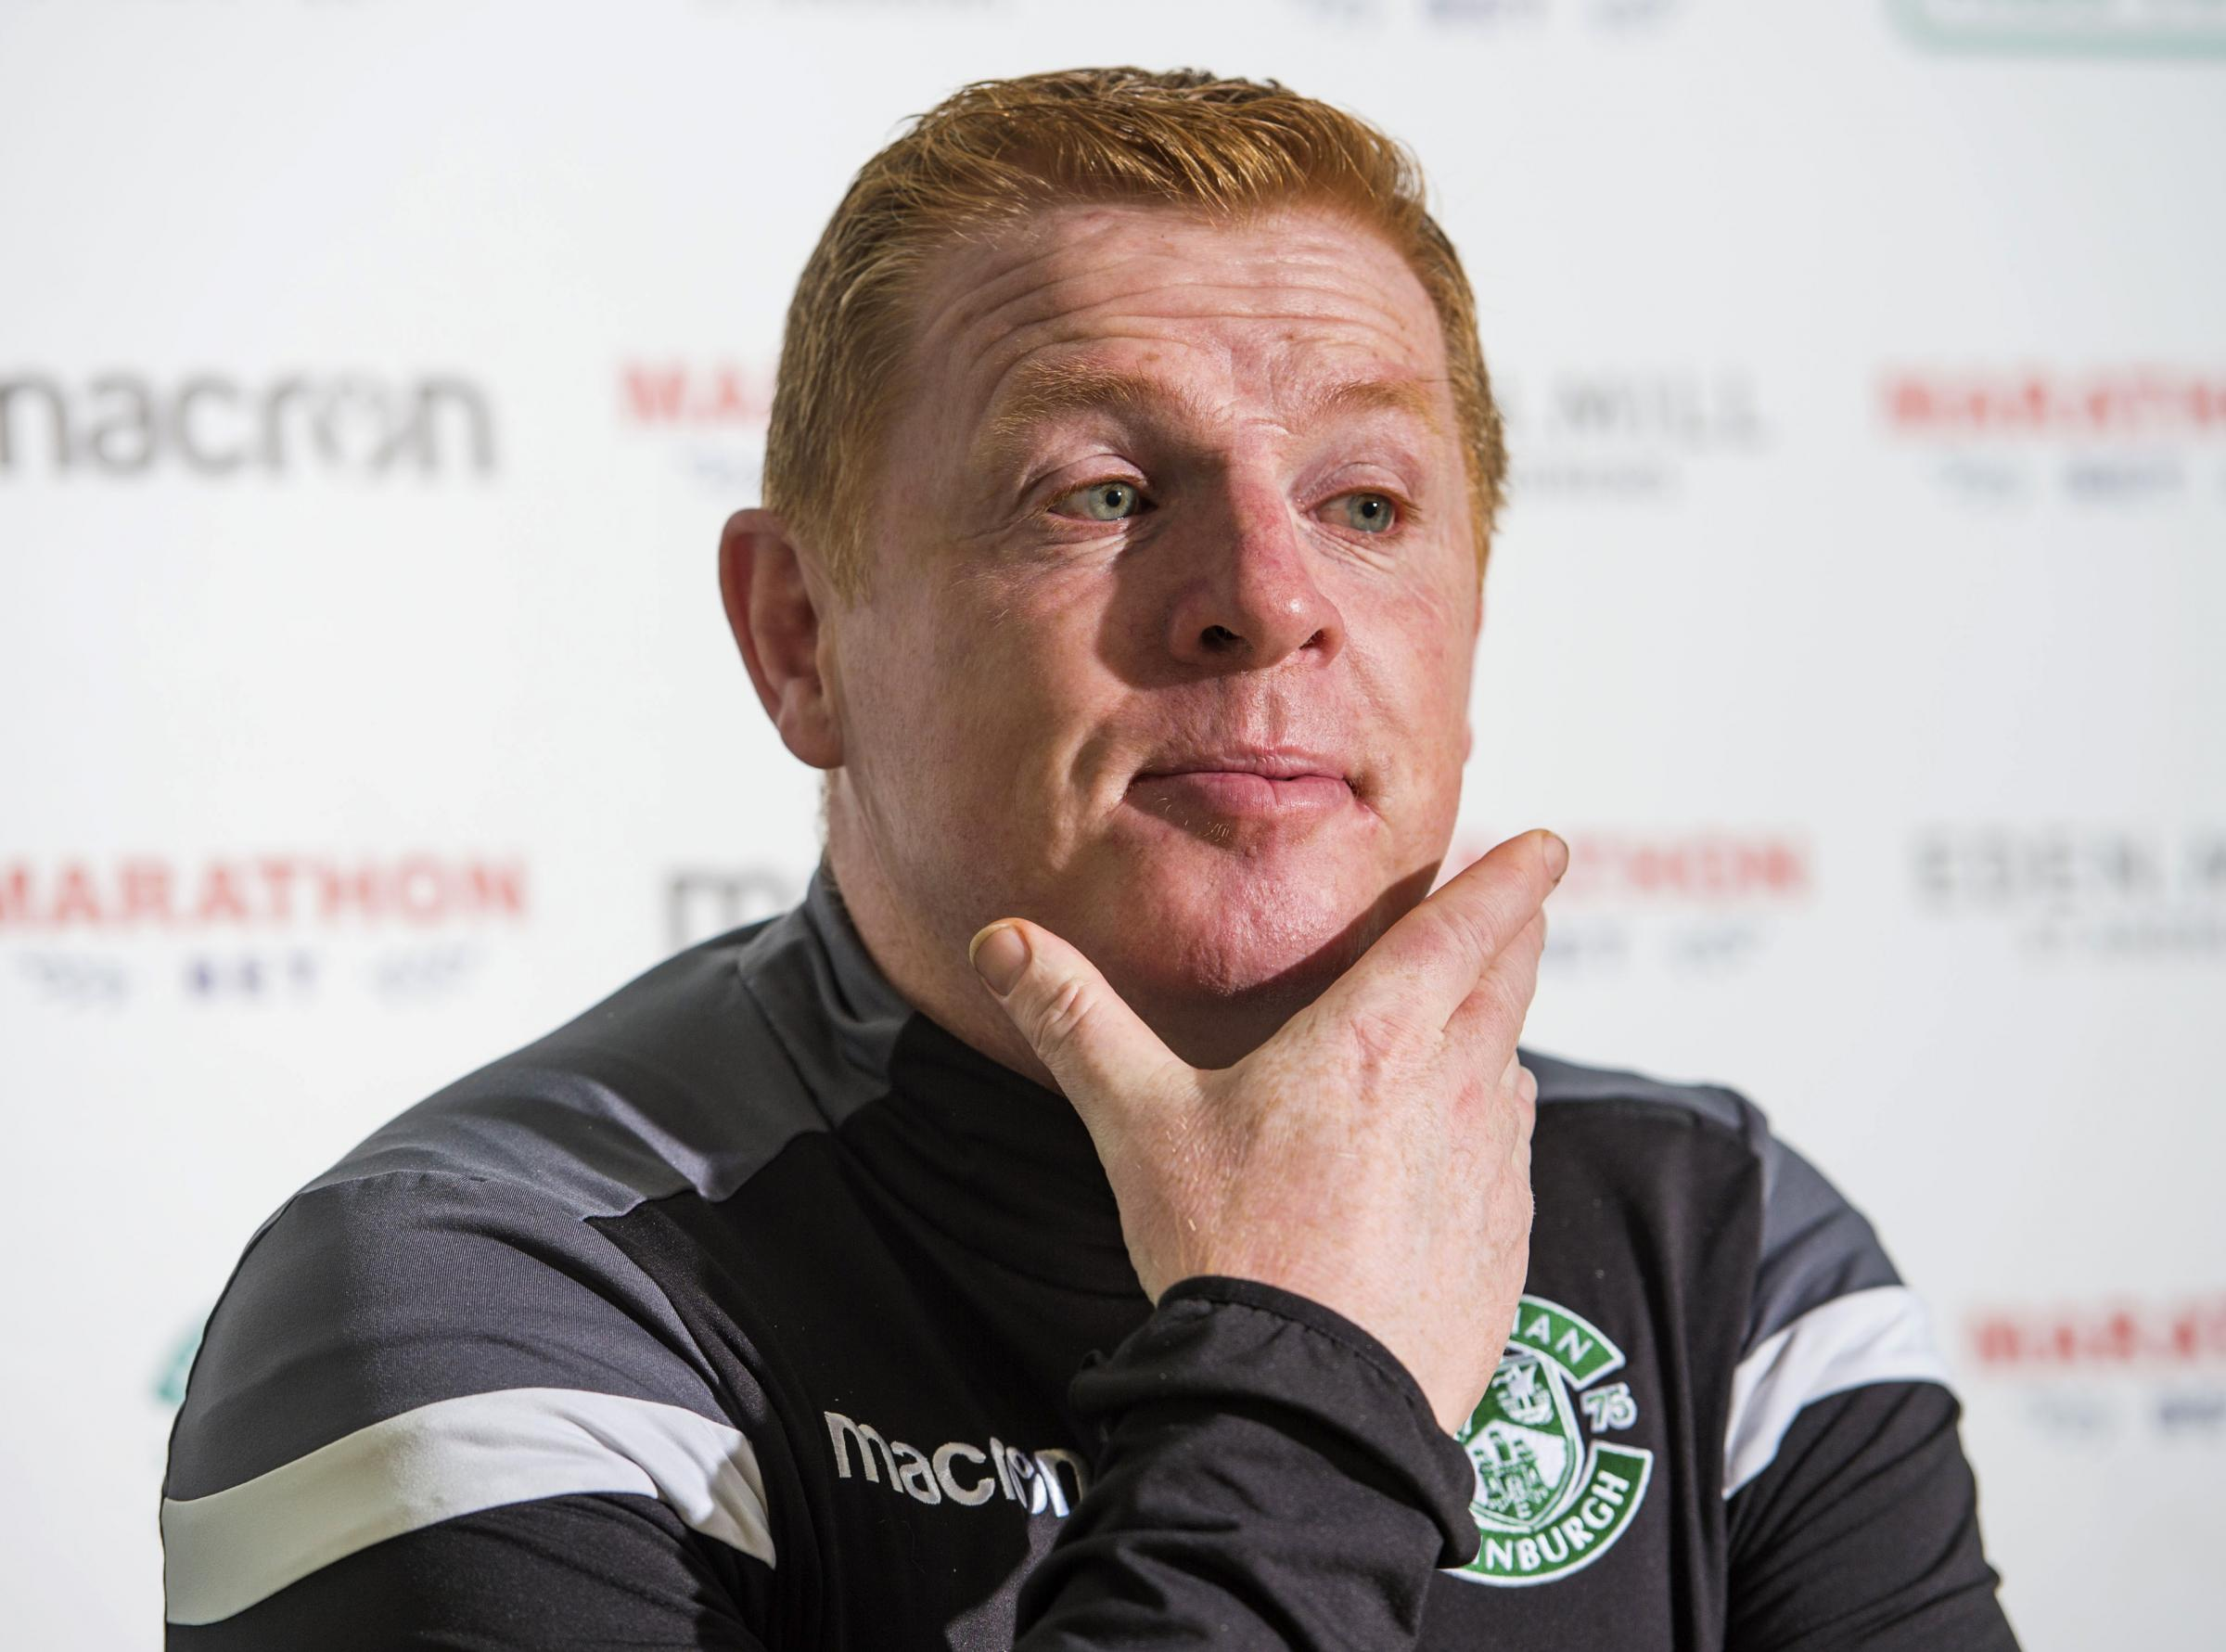 Nicola Sturgeon praises 'great dignity' of Neil Lennon after attack